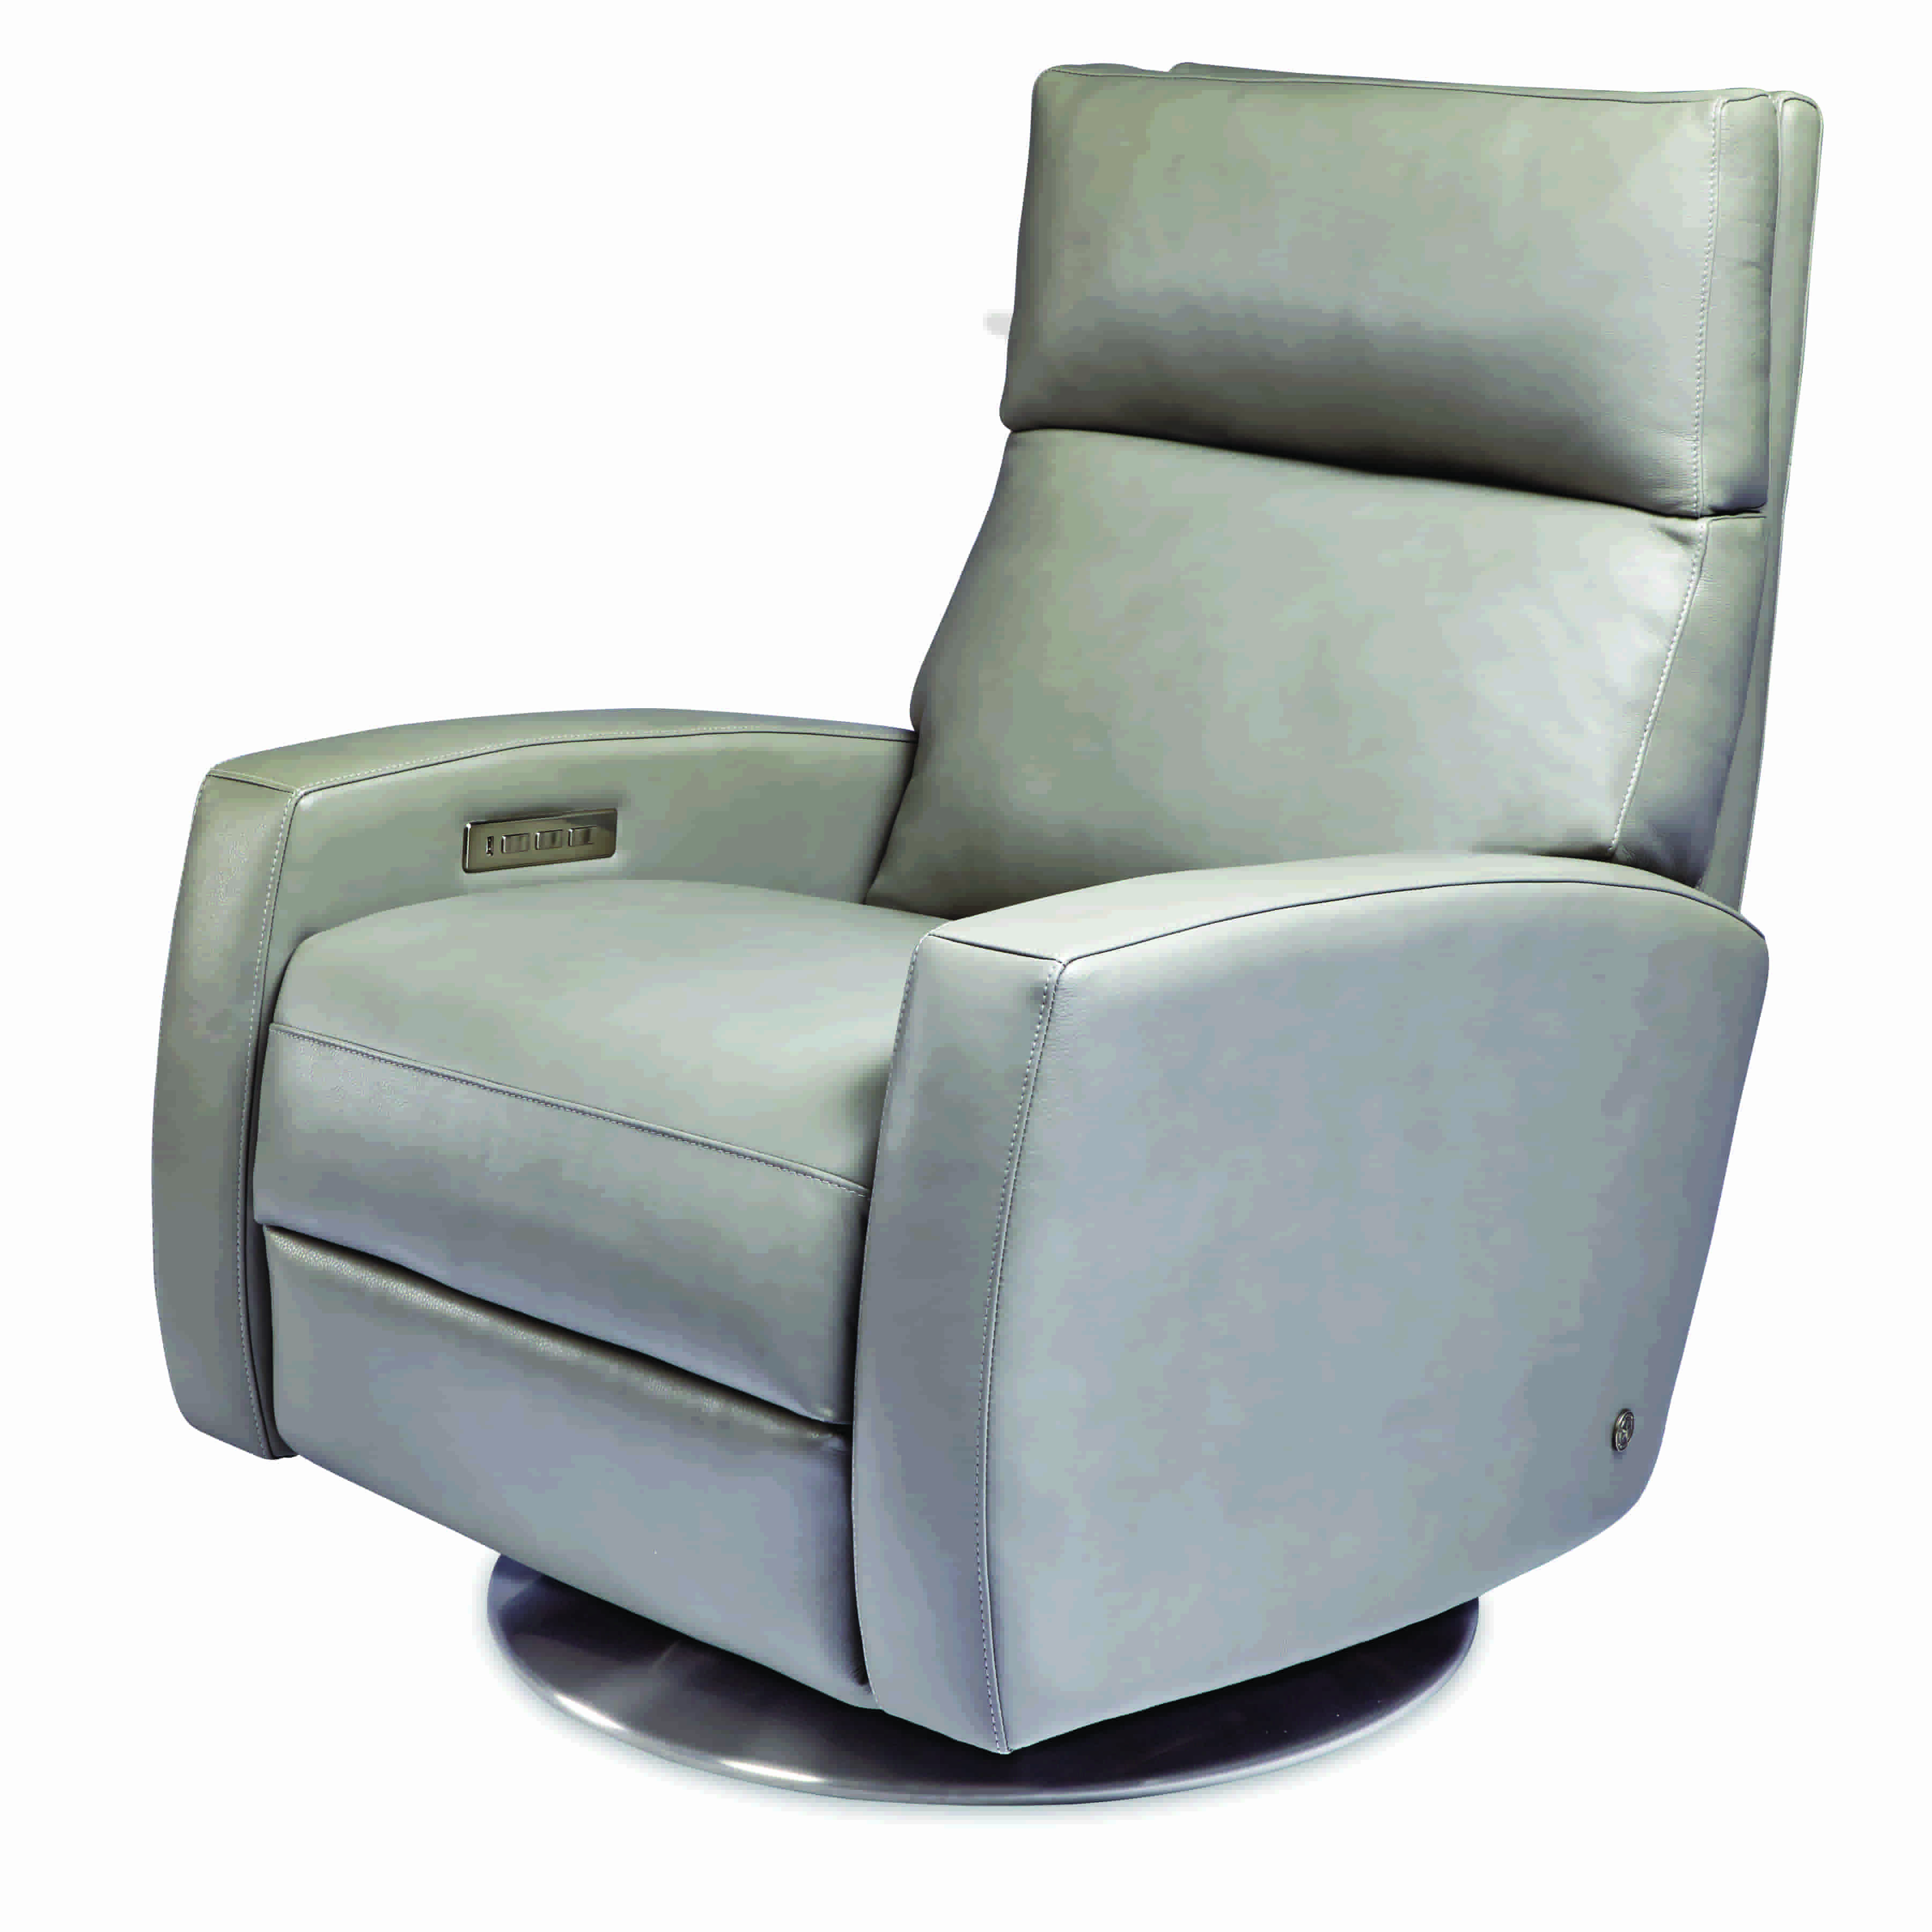 Comfort Recliner American Leather Leather recliner